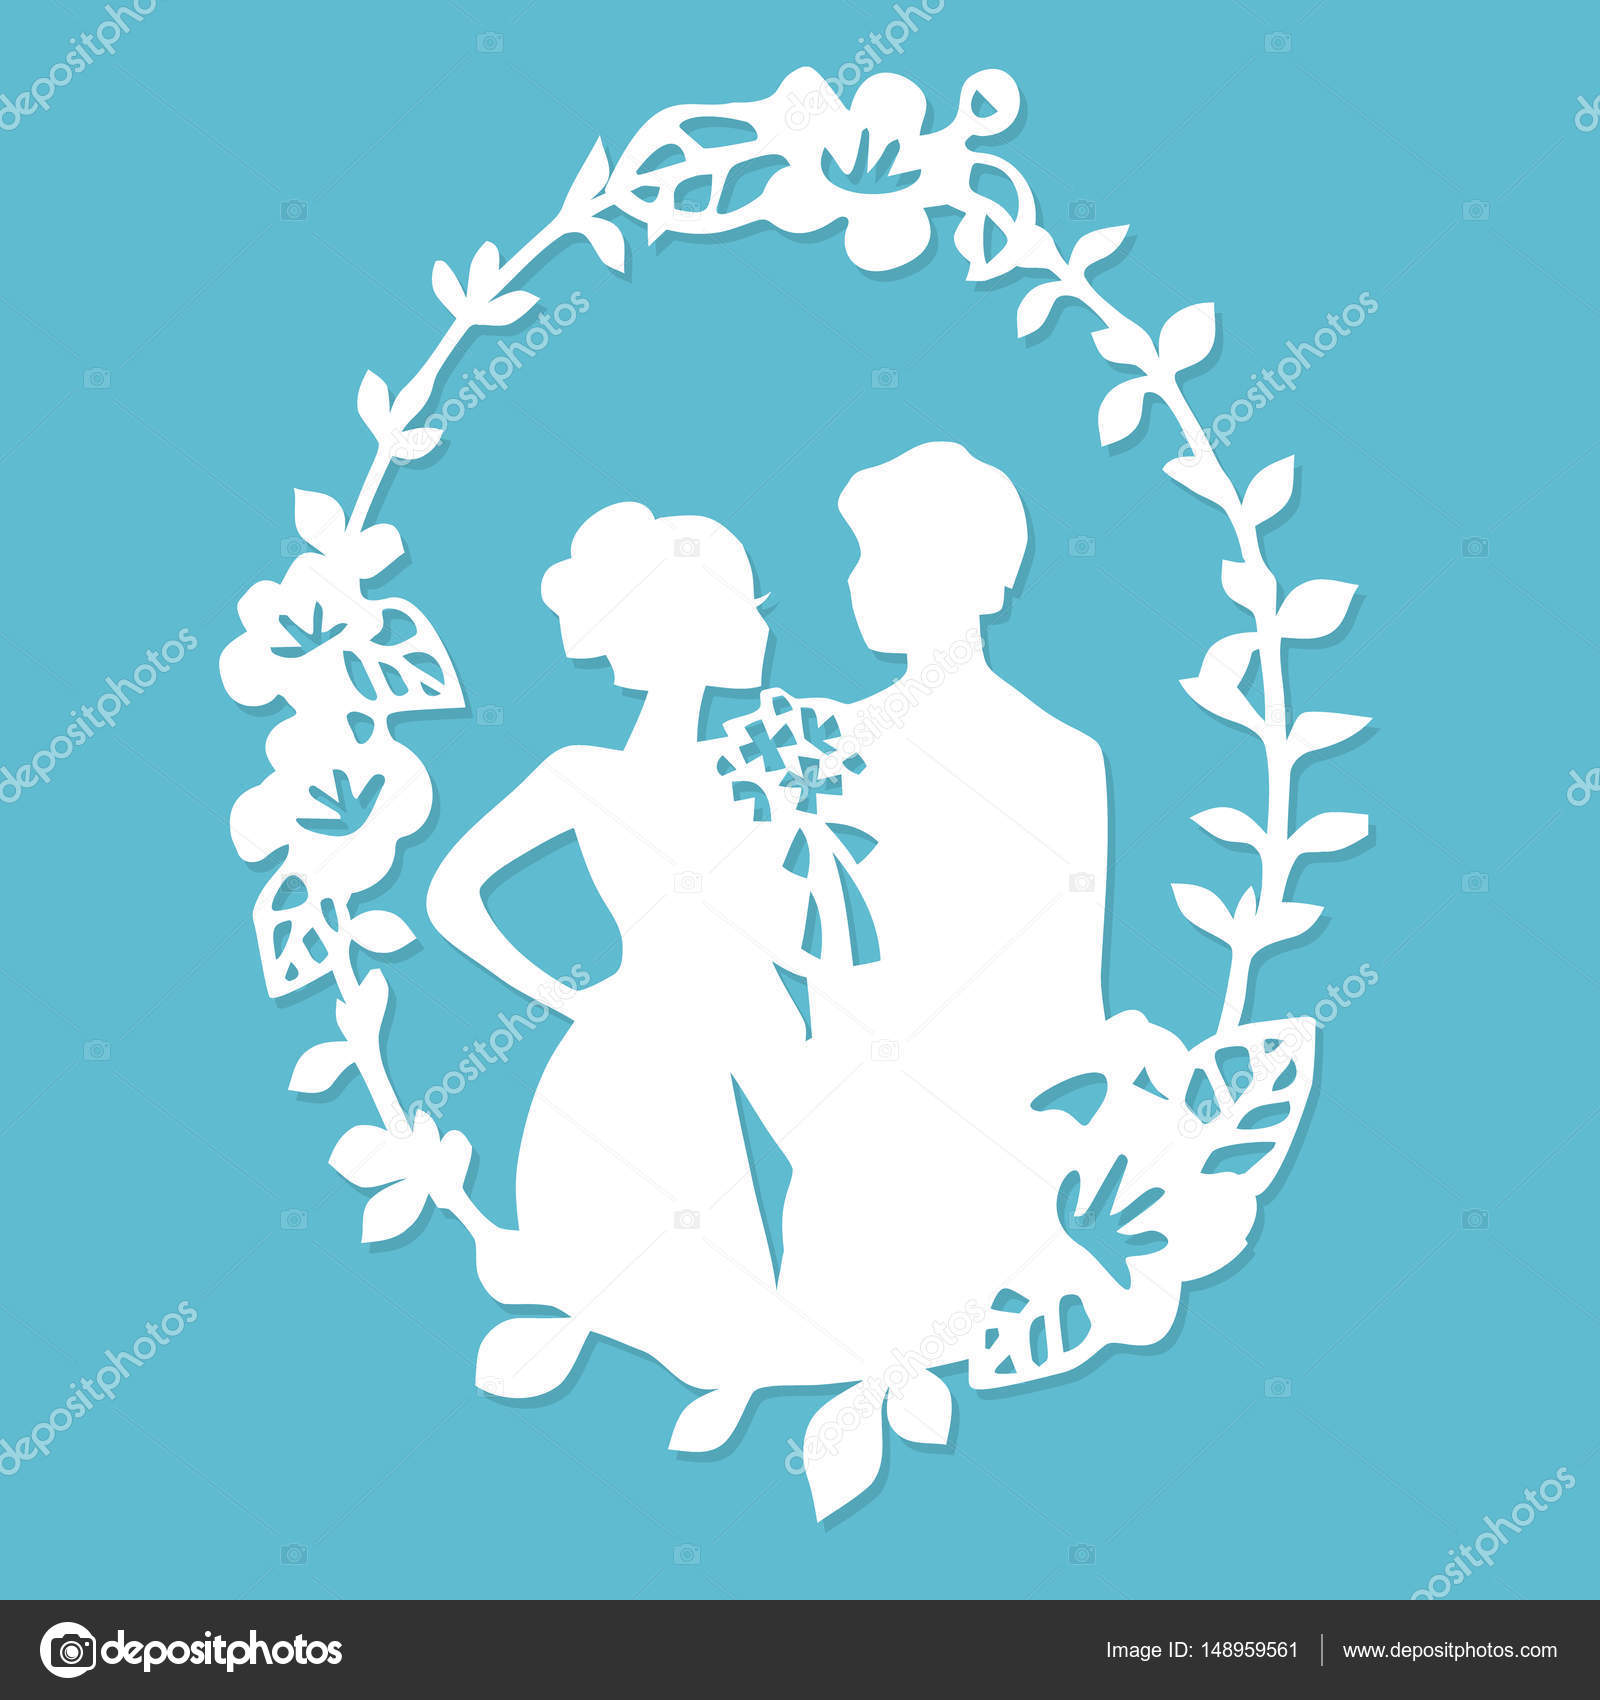 A Vector Illustration Of Vintage Silhouette Wedding Groom Bride Wreath Frame In Paper Cut Style By Totallyjamie